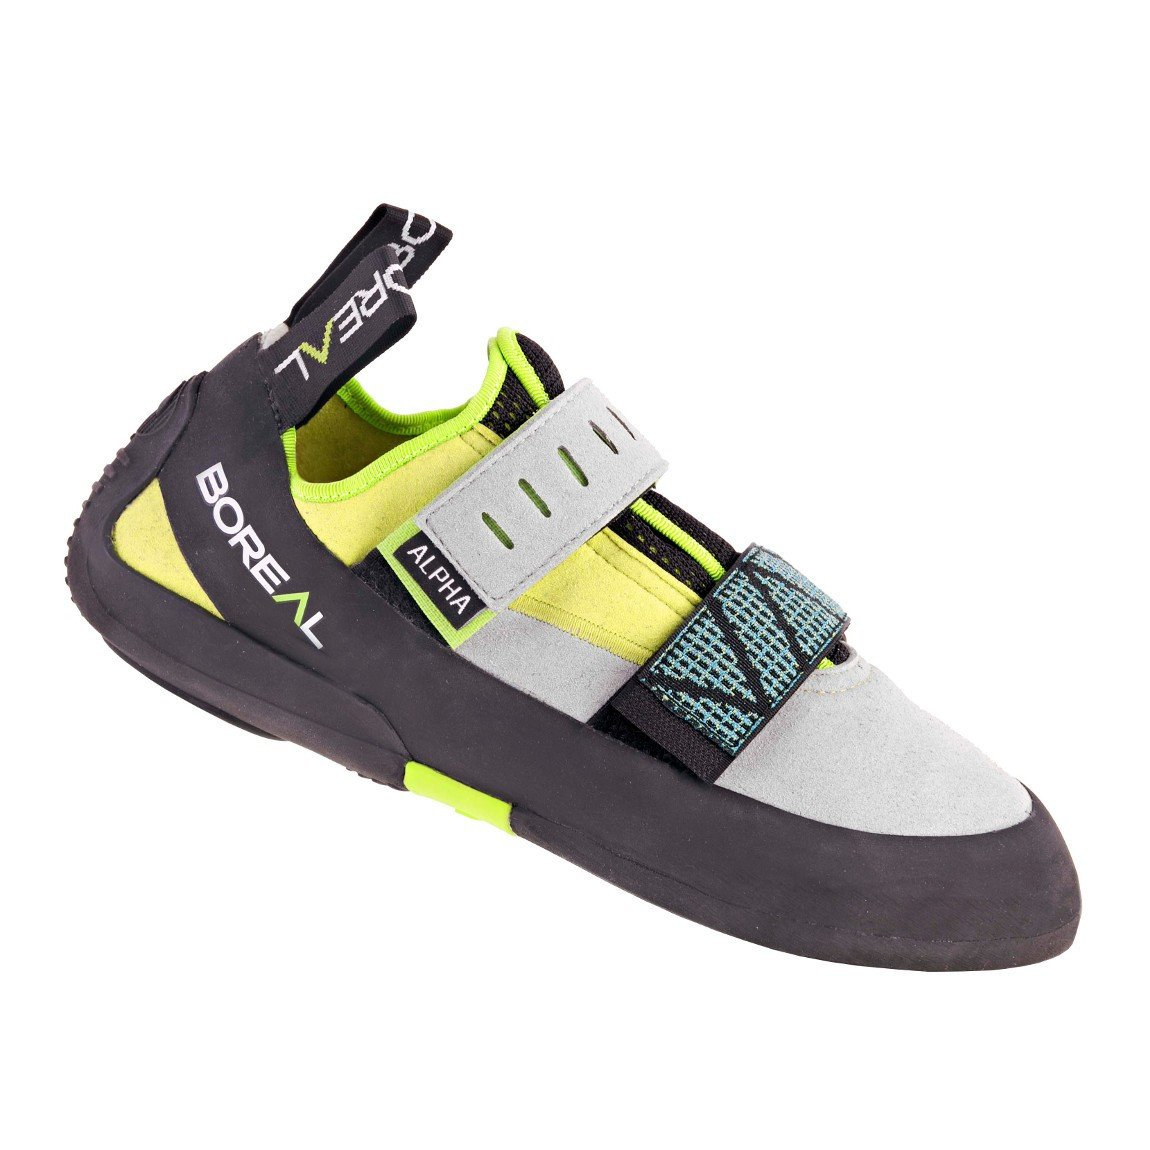 Boreal Alpha VC climbing shoe, side view in black, grey and yellow